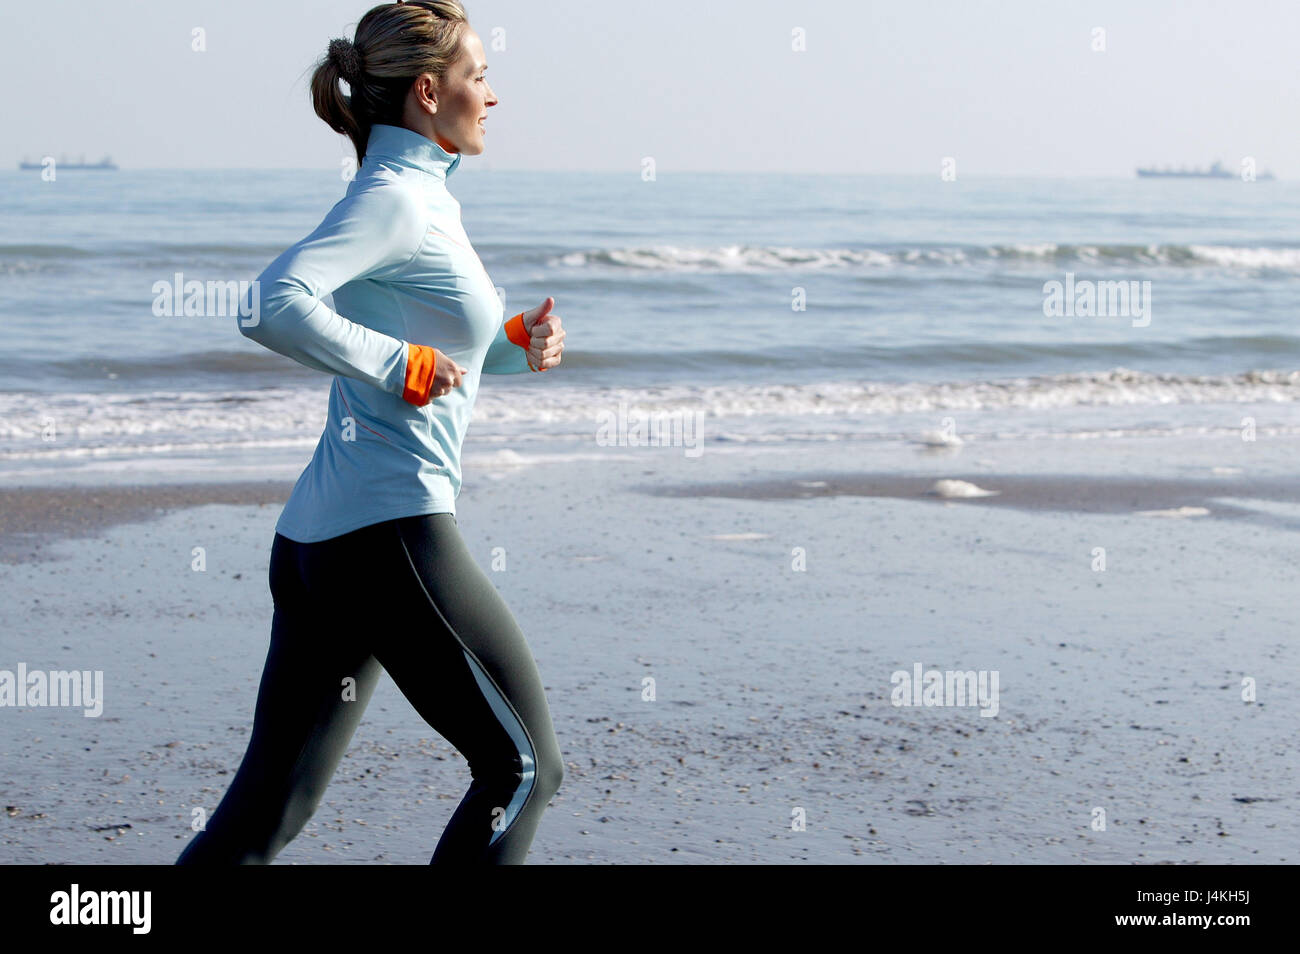 Beach, jogger, preview, detail, autumn 30-40 years, winter clothes, woman, jogging, jog, running, fitness, training, - Stock Image